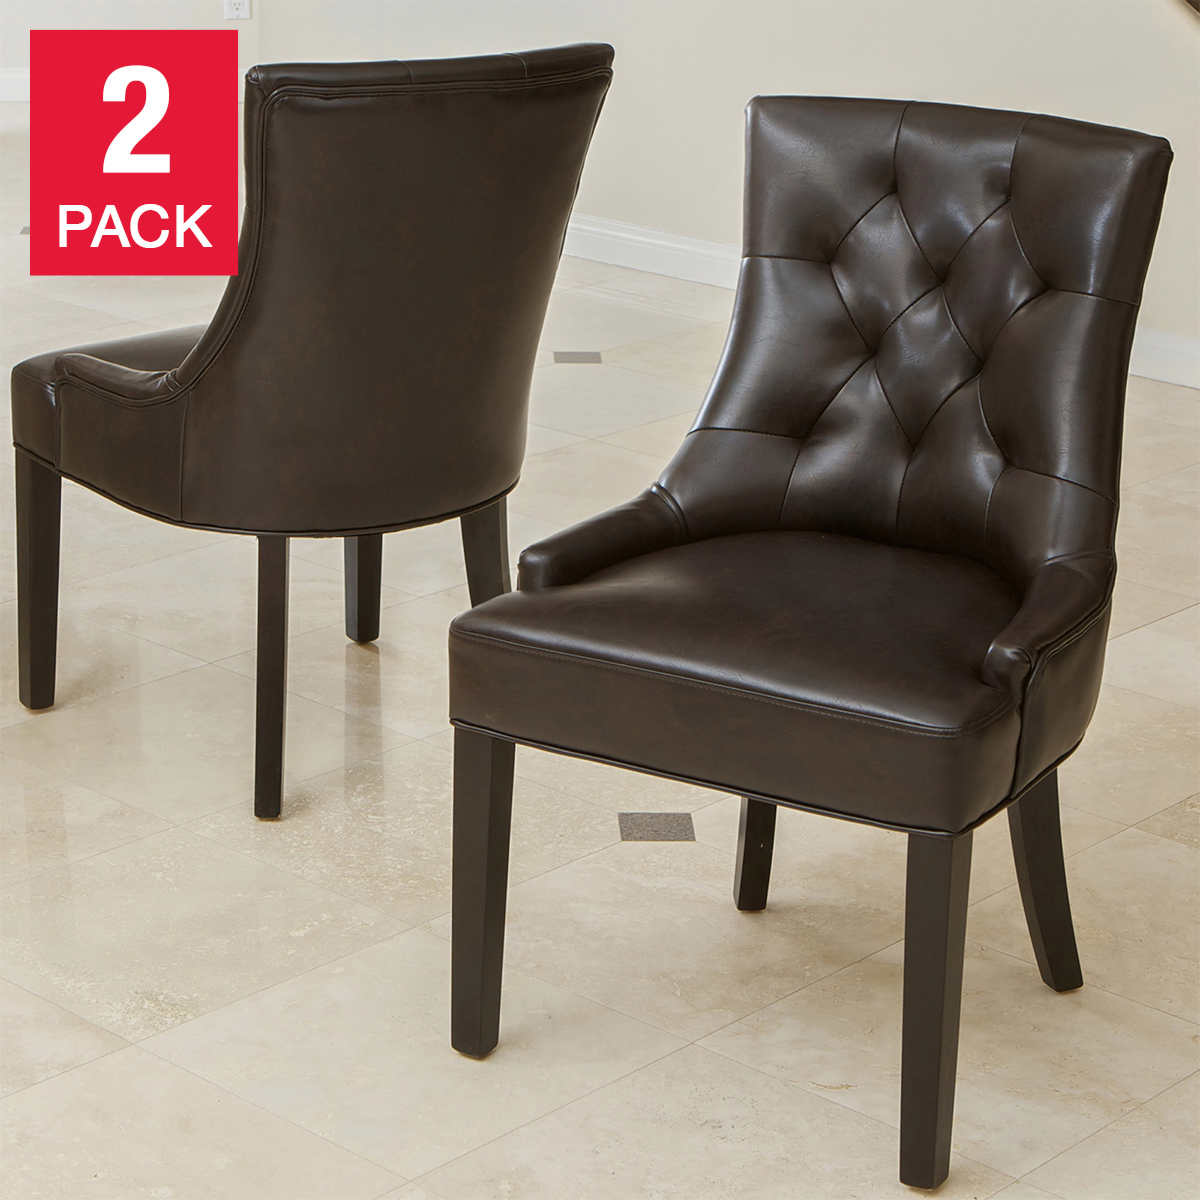 kitchen dining room chairs leather kitchen chairs Wynn Bonded Leather Chair 2 pack